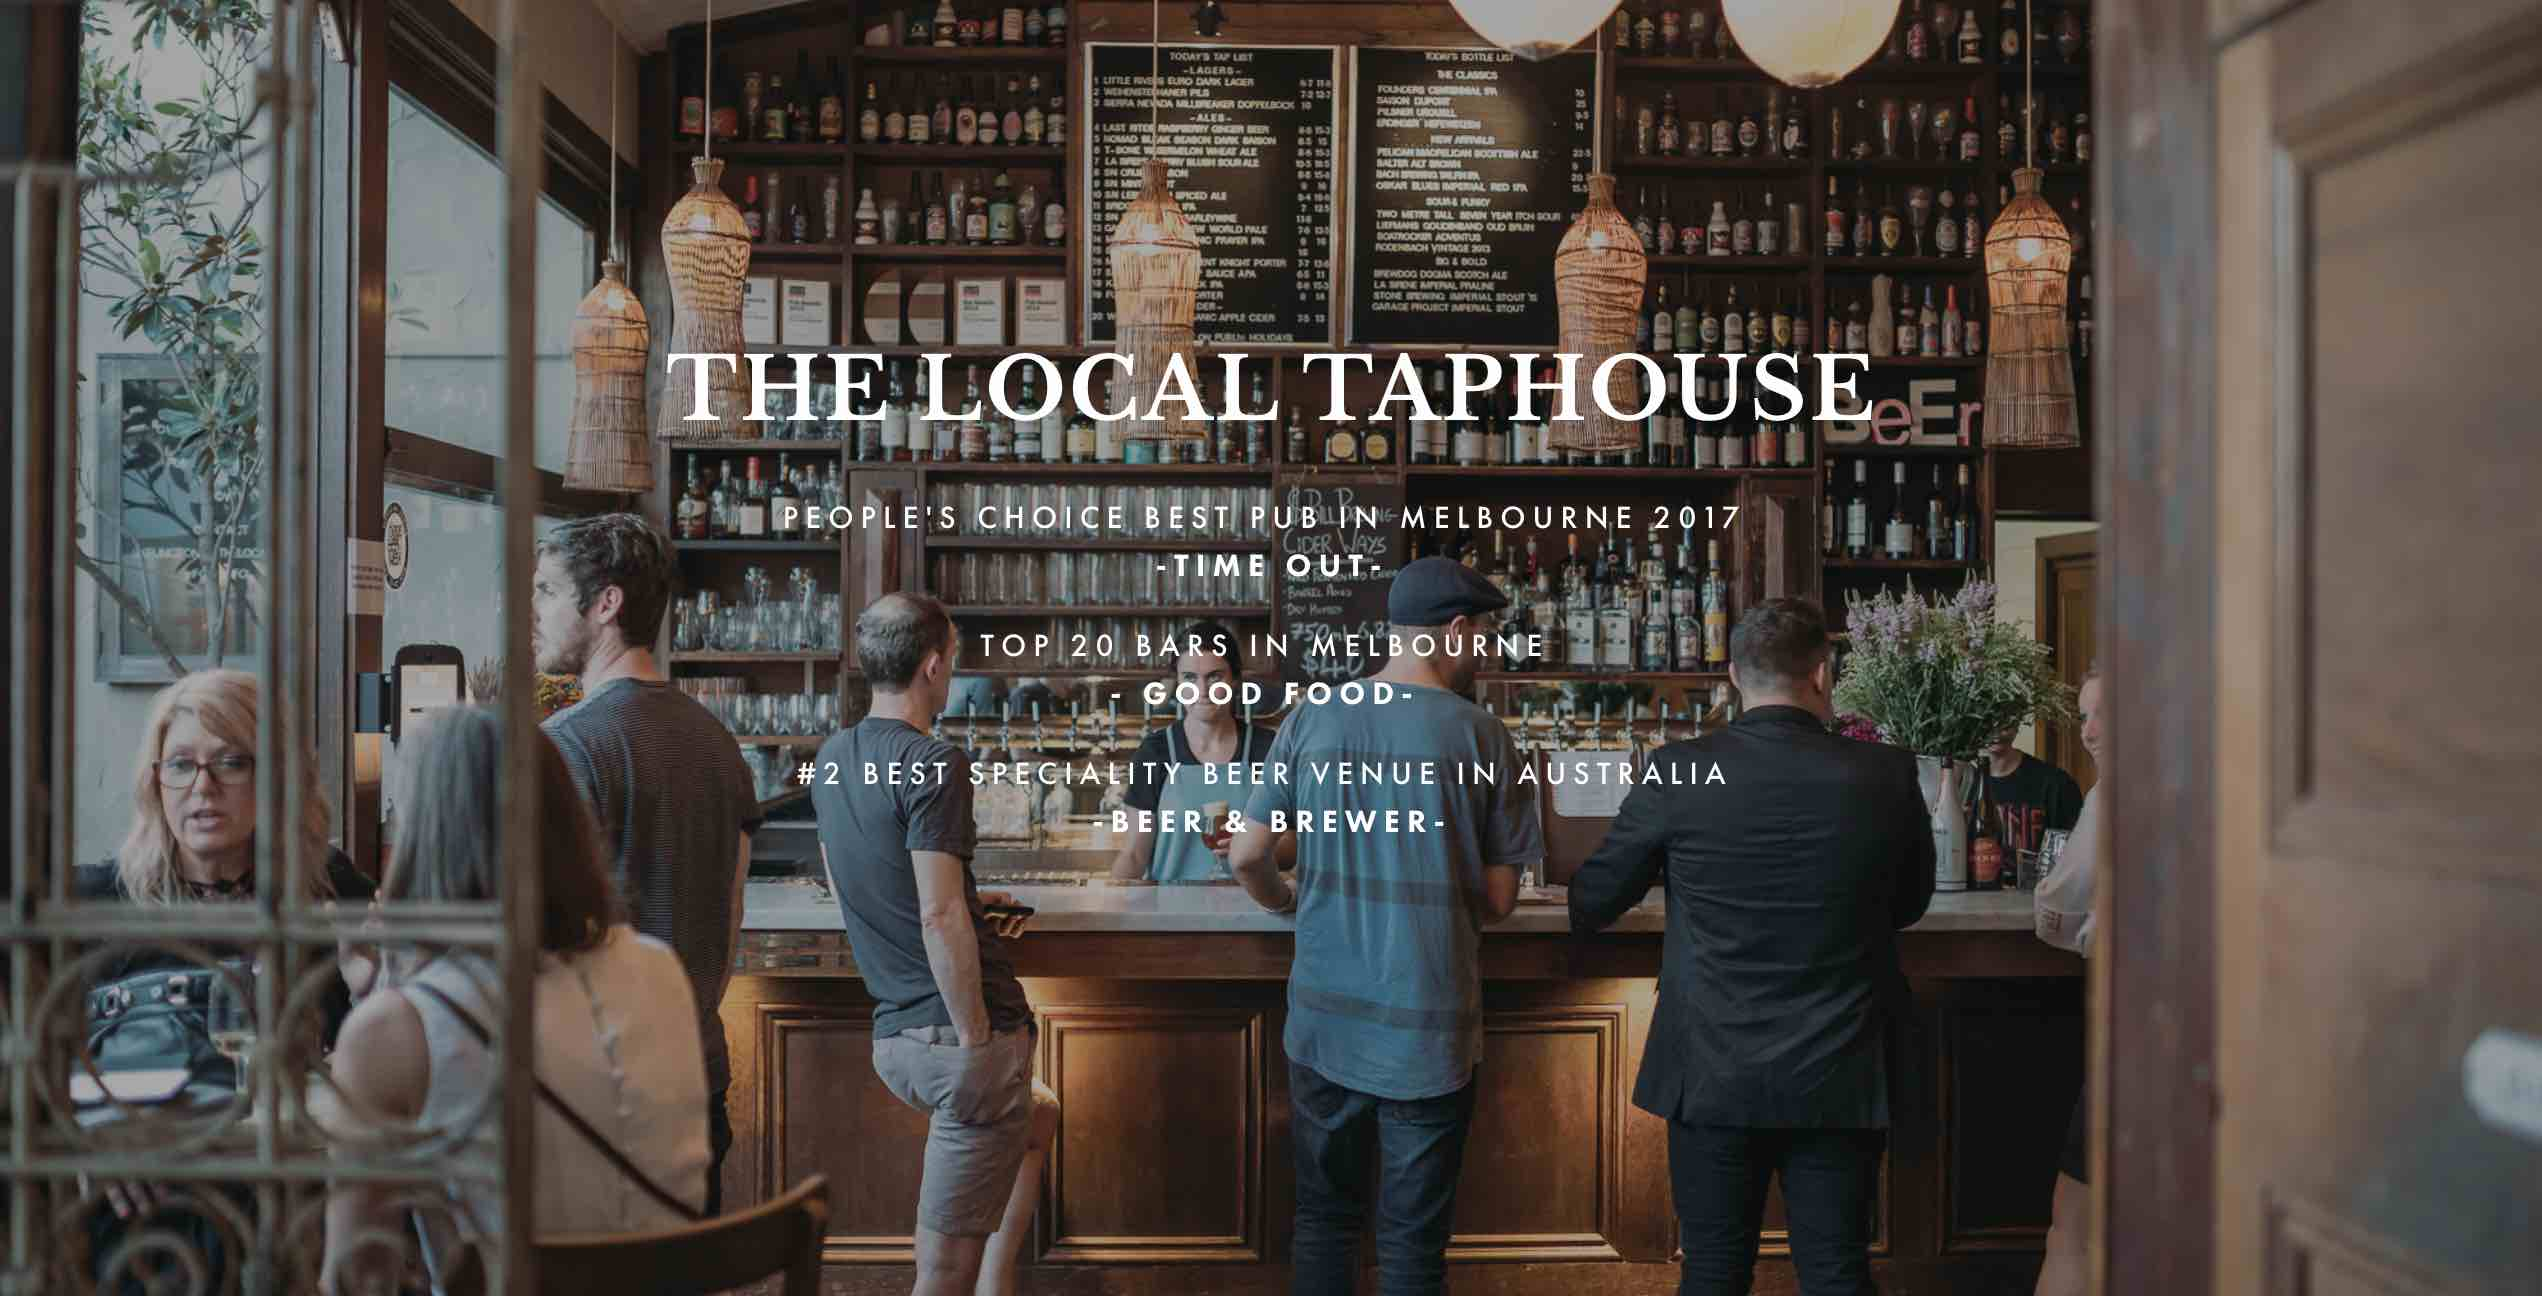 The Local Taphouse - Rooftop Bars Melbourne 2019